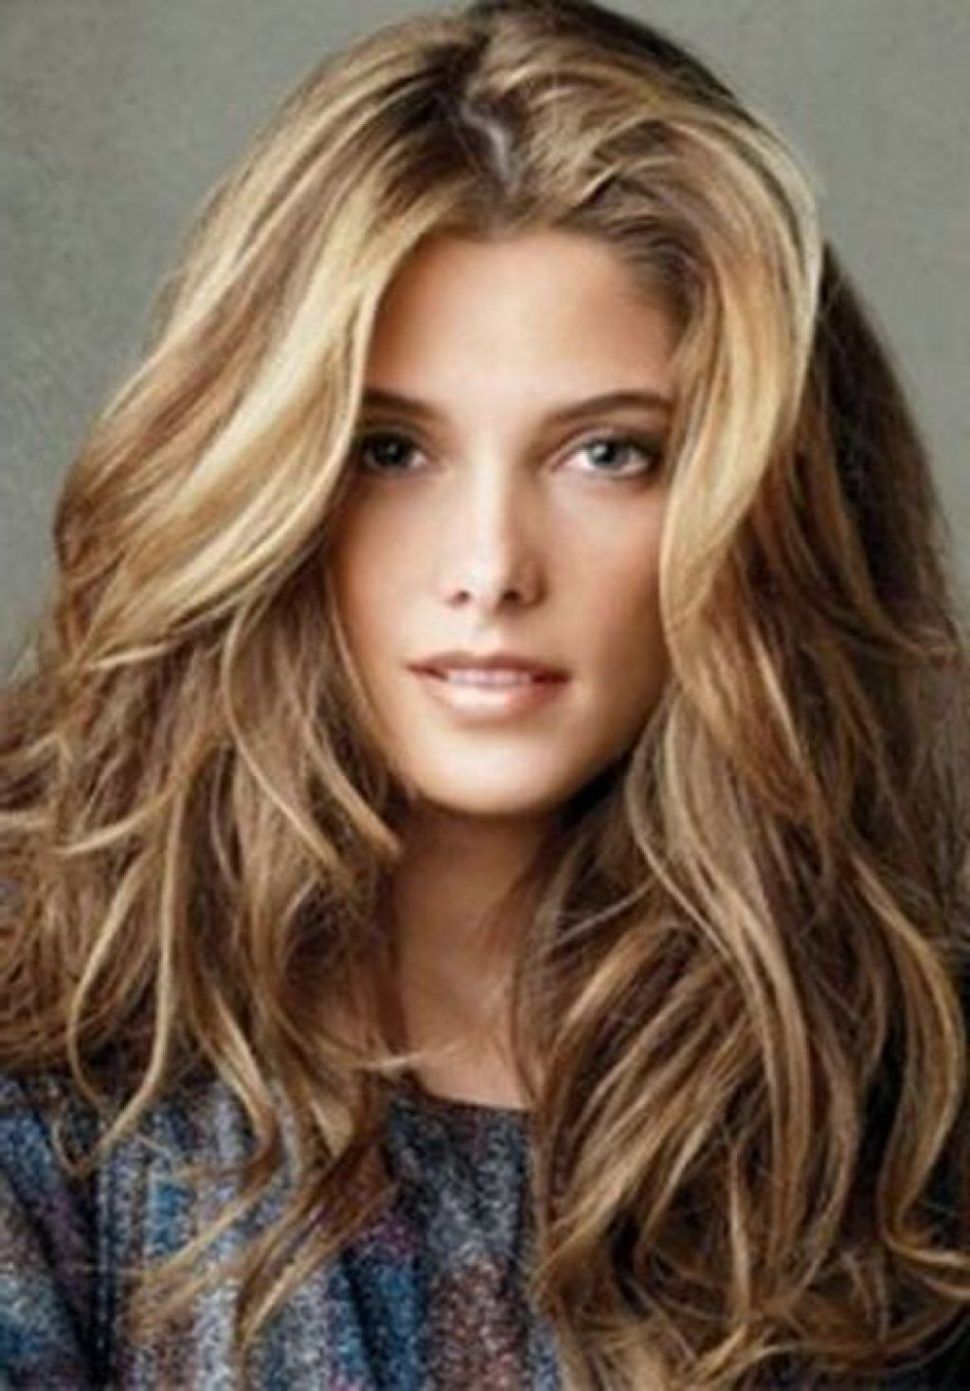 Hair Color Image Result For Best Hair Color Green Eyes And Fair Skin Surprising Dark Blo Dark Blonde Hair Color Pale Skin Hair Color Hair Colour For Green Eyes